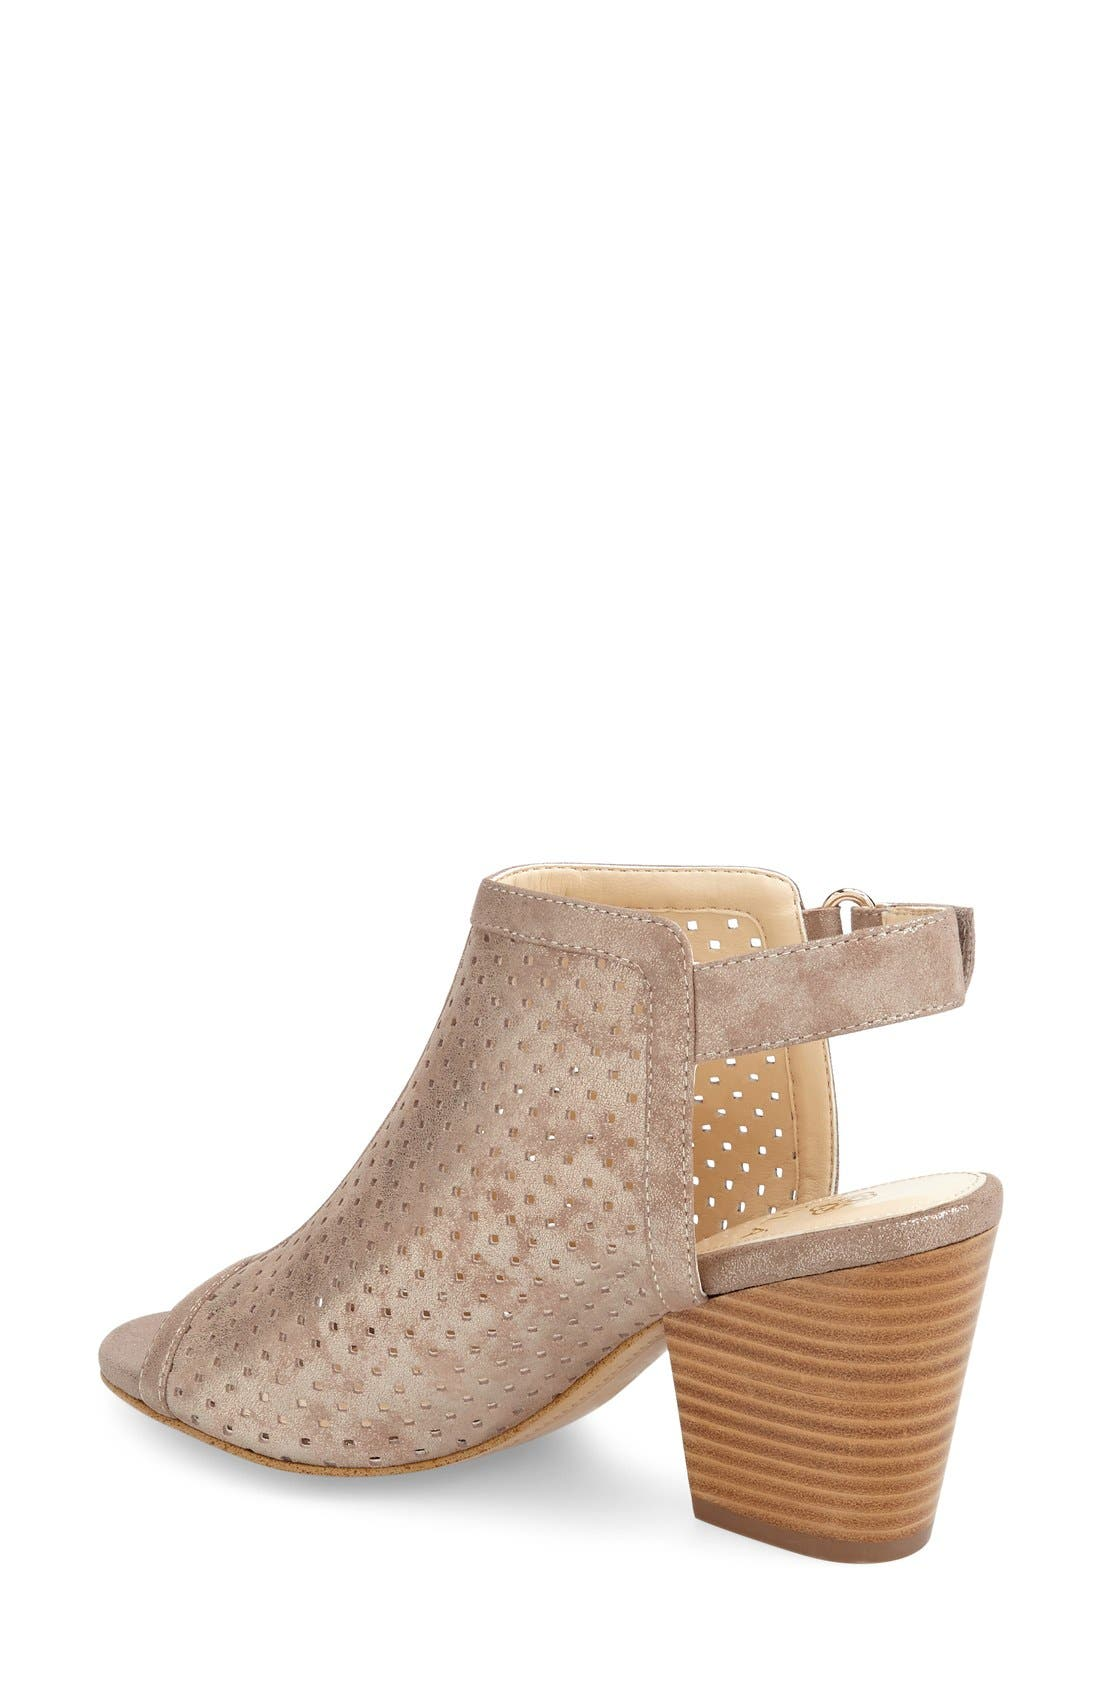 'Lora' Perforated Open-Toe Bootie Sandal,                             Alternate thumbnail 2, color,                             040